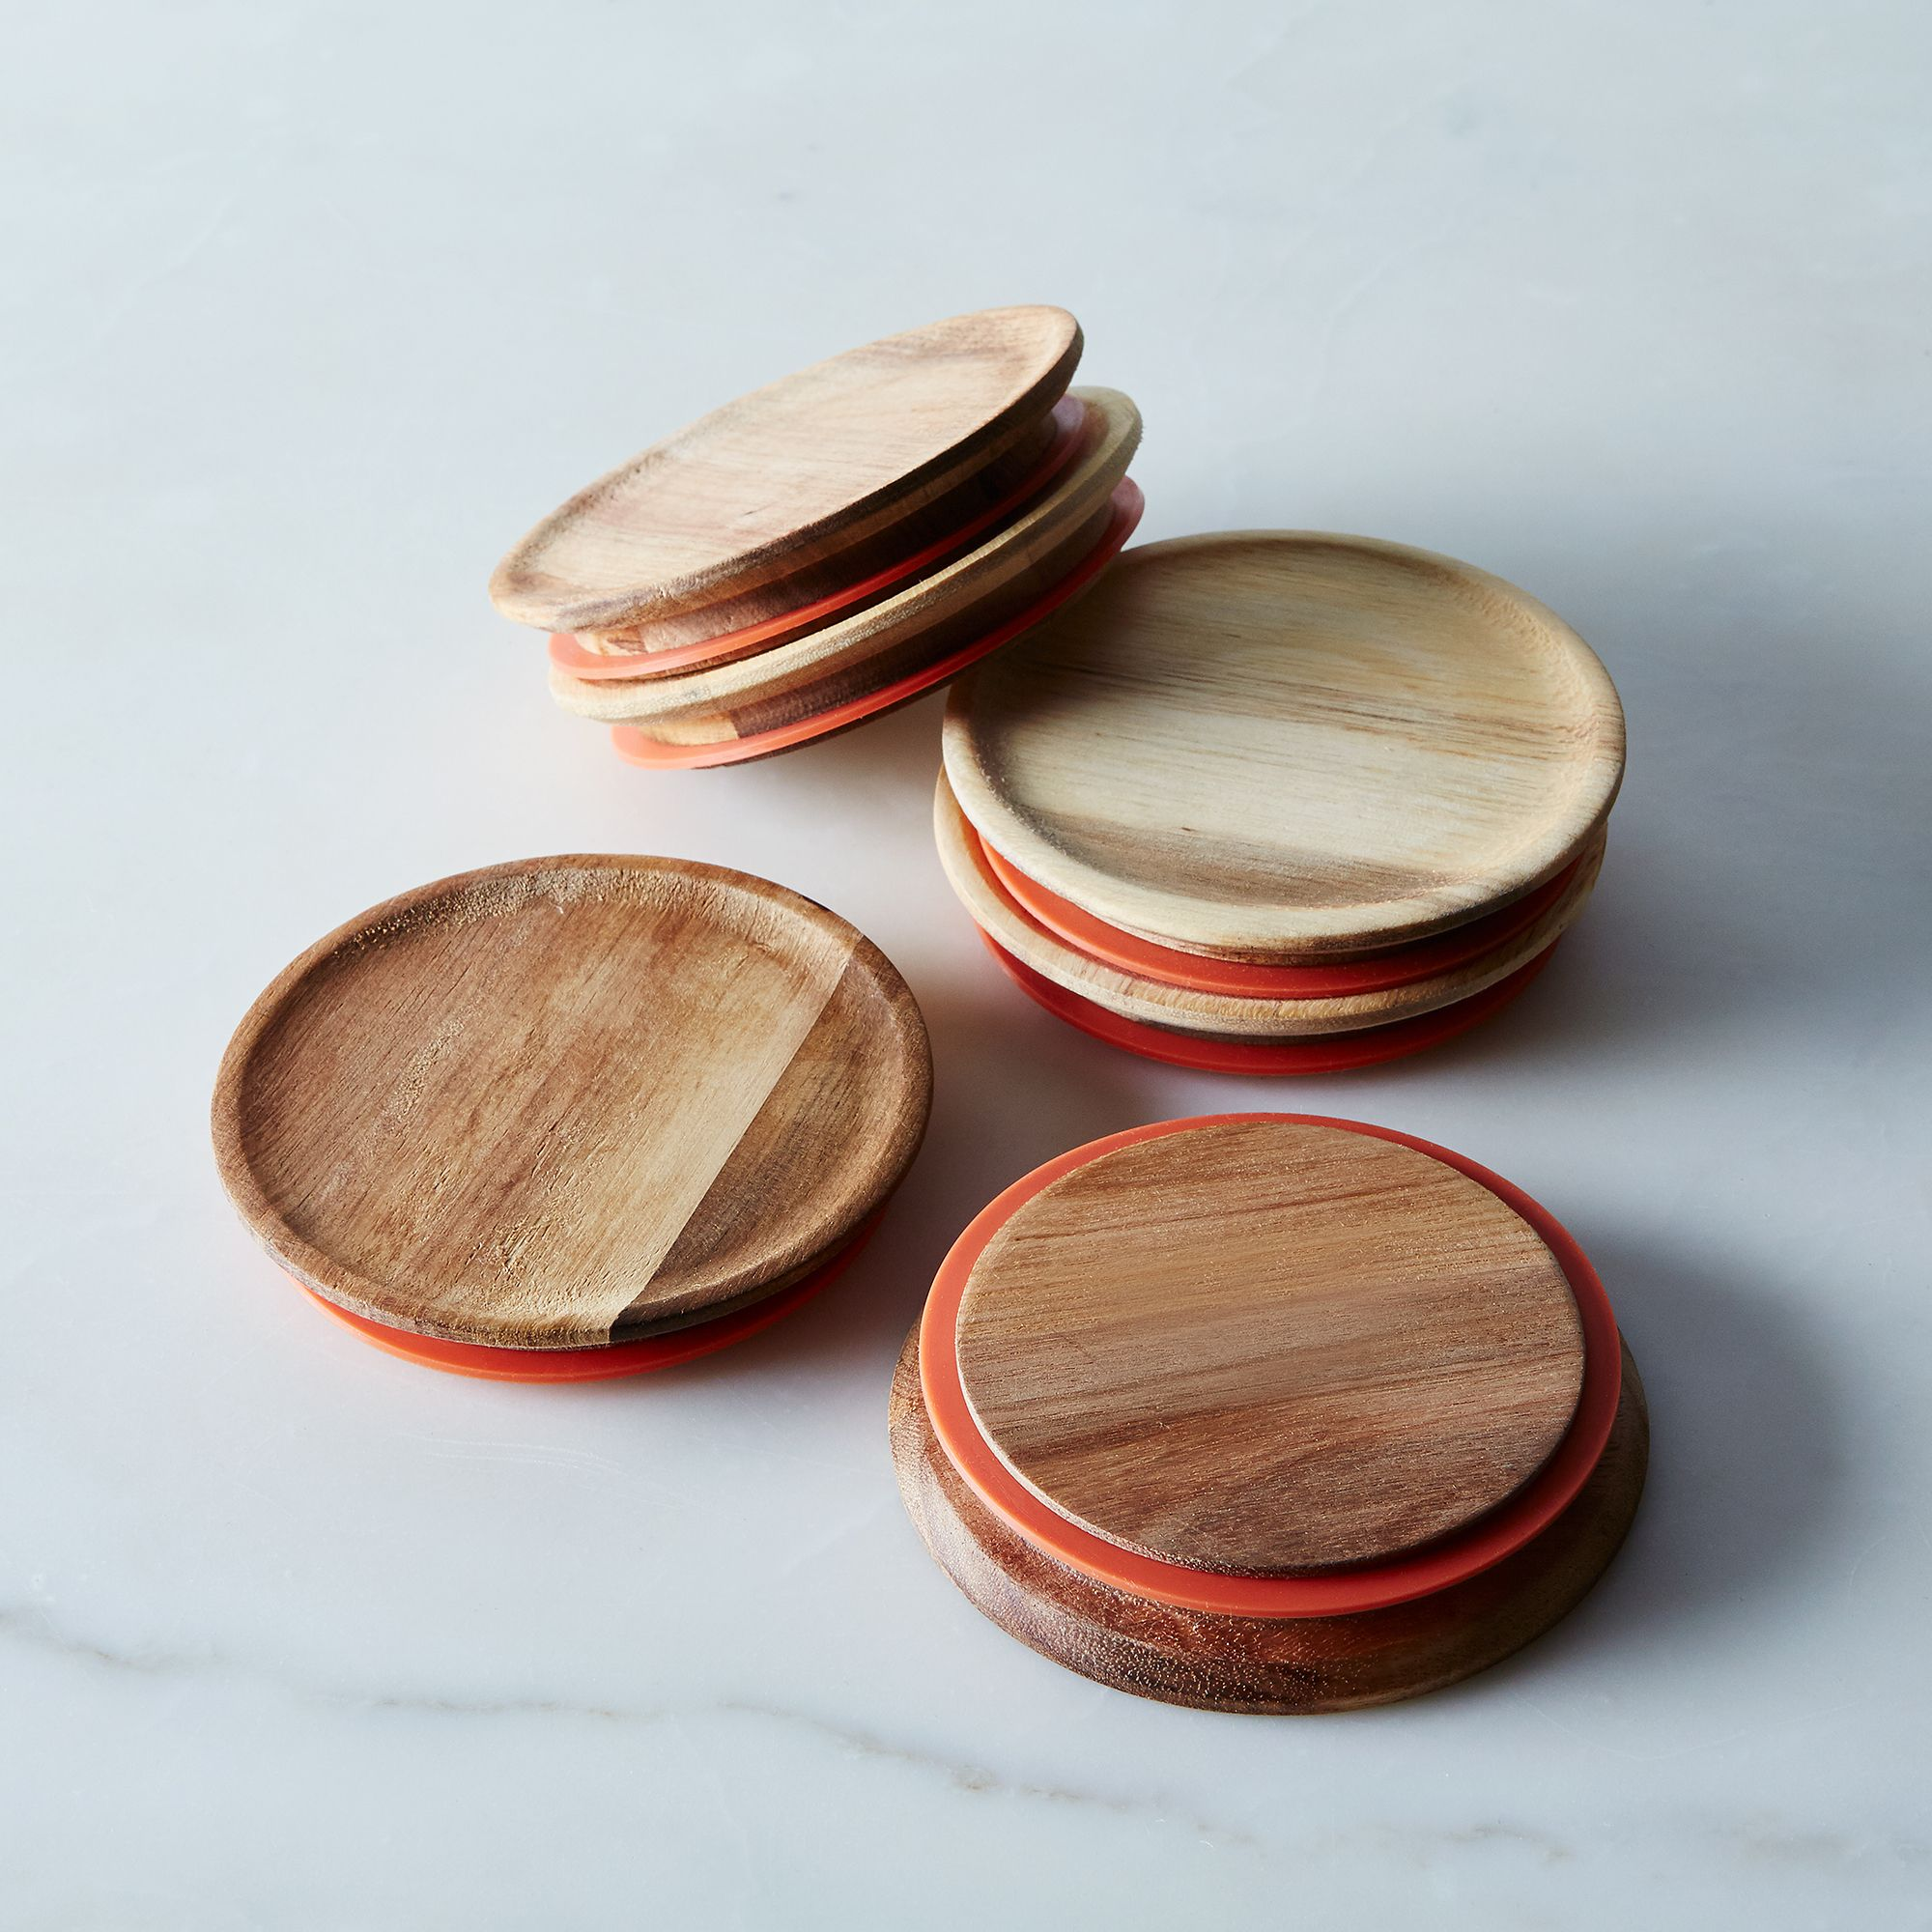 8600d727 3ca2 4793 9b10 fe0ca5f3e003  2016 0318 mountain feed tulip jars wood lid set silo rocky luten 2039